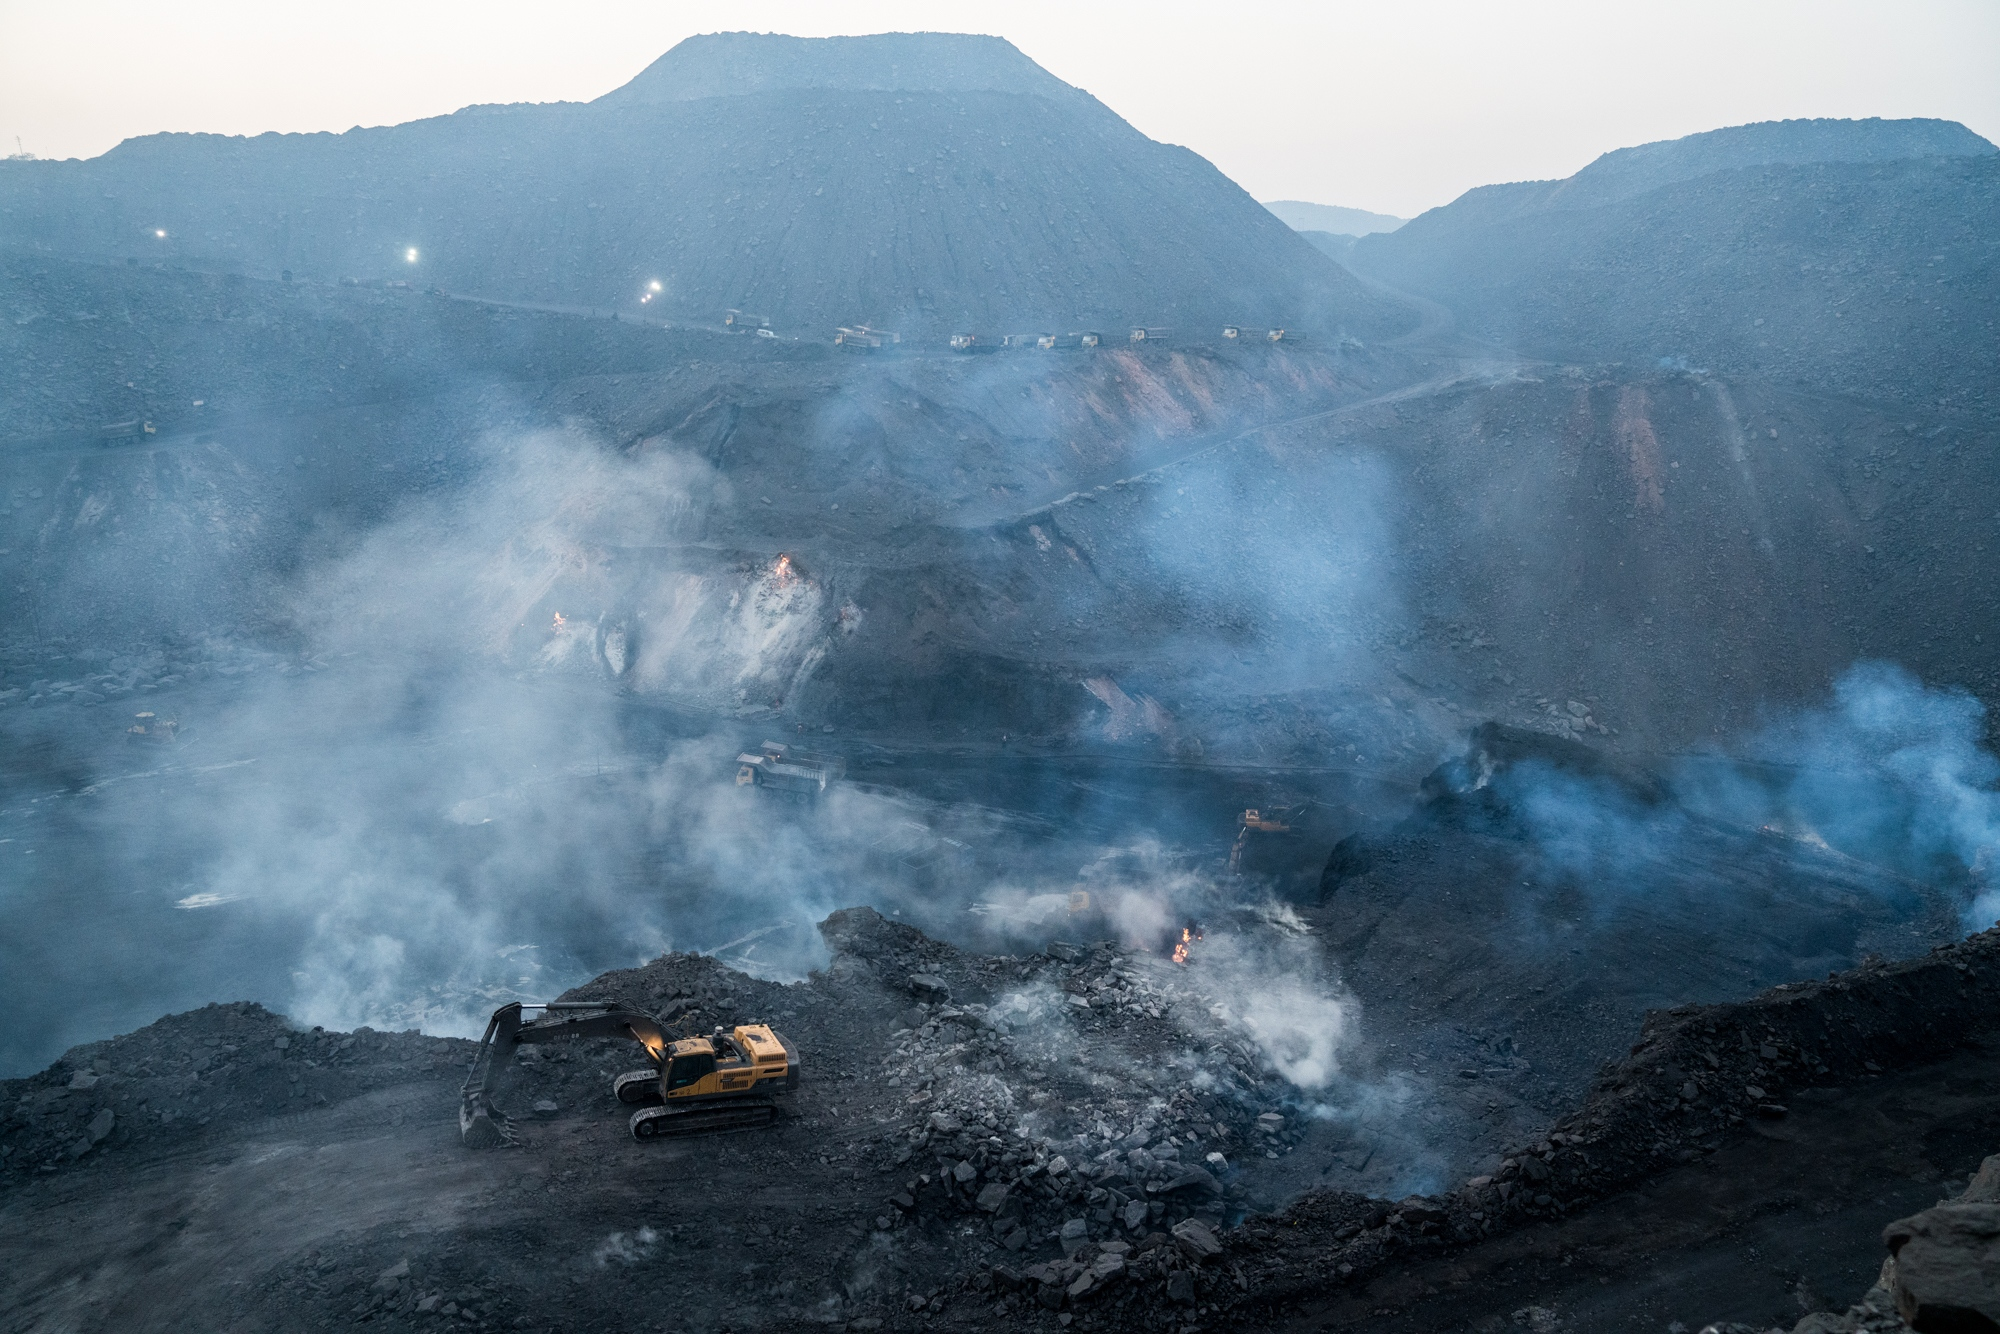 Smoke billowing up from the underground coal-fuelled fires in one of India's largest coal mining regions.